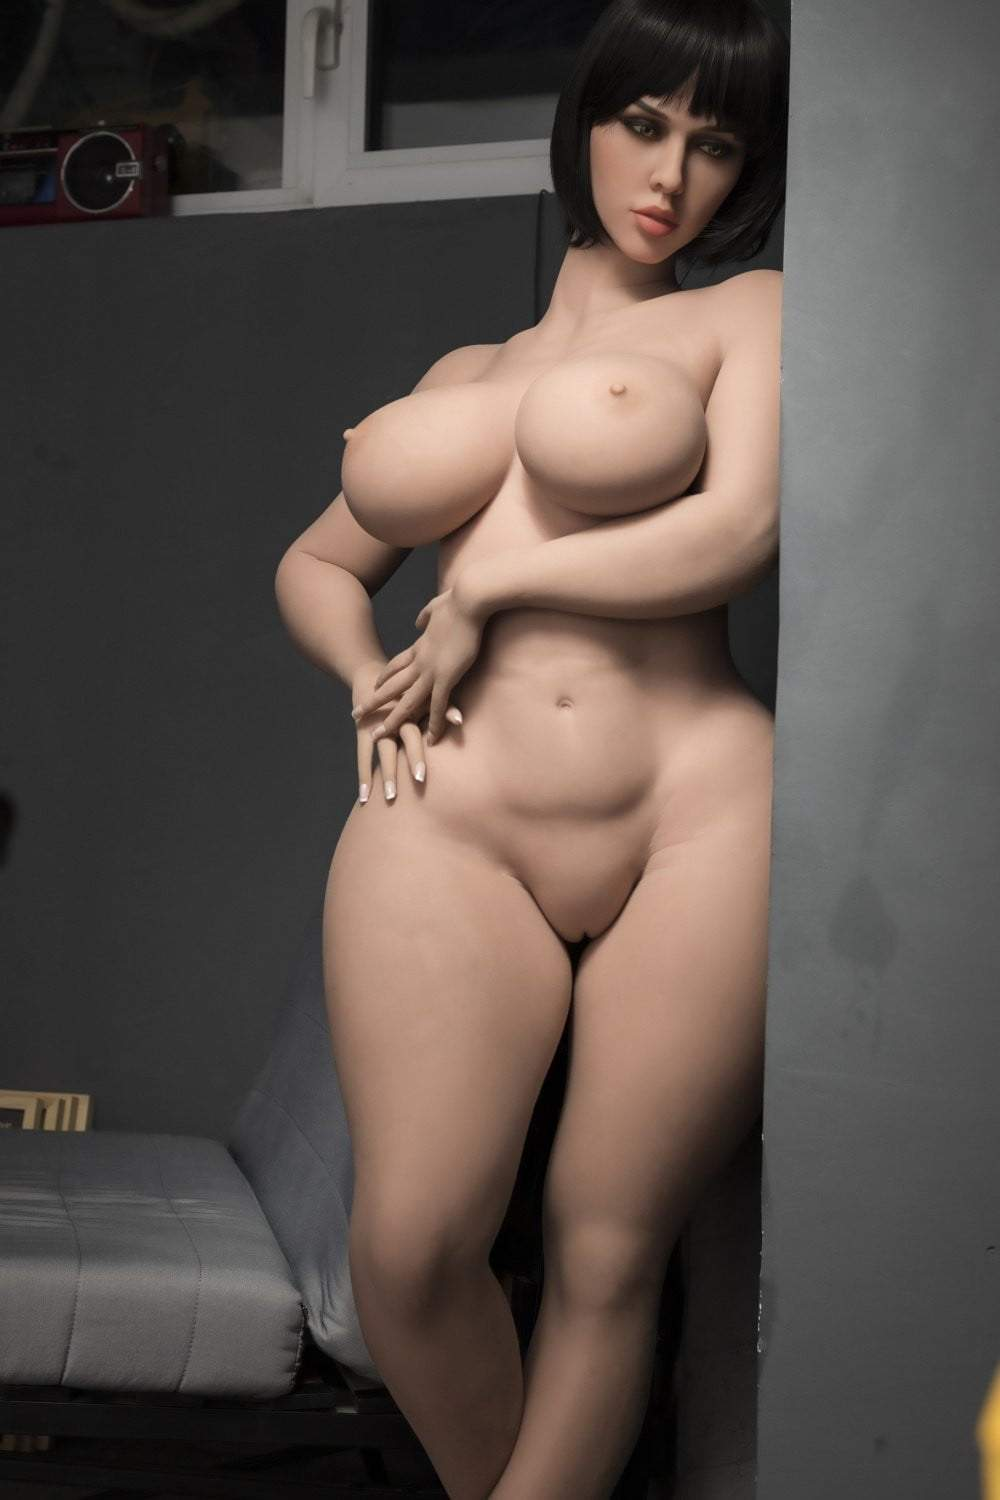 sexe silicone Celia Butt Sexdoll Grosse pas cher